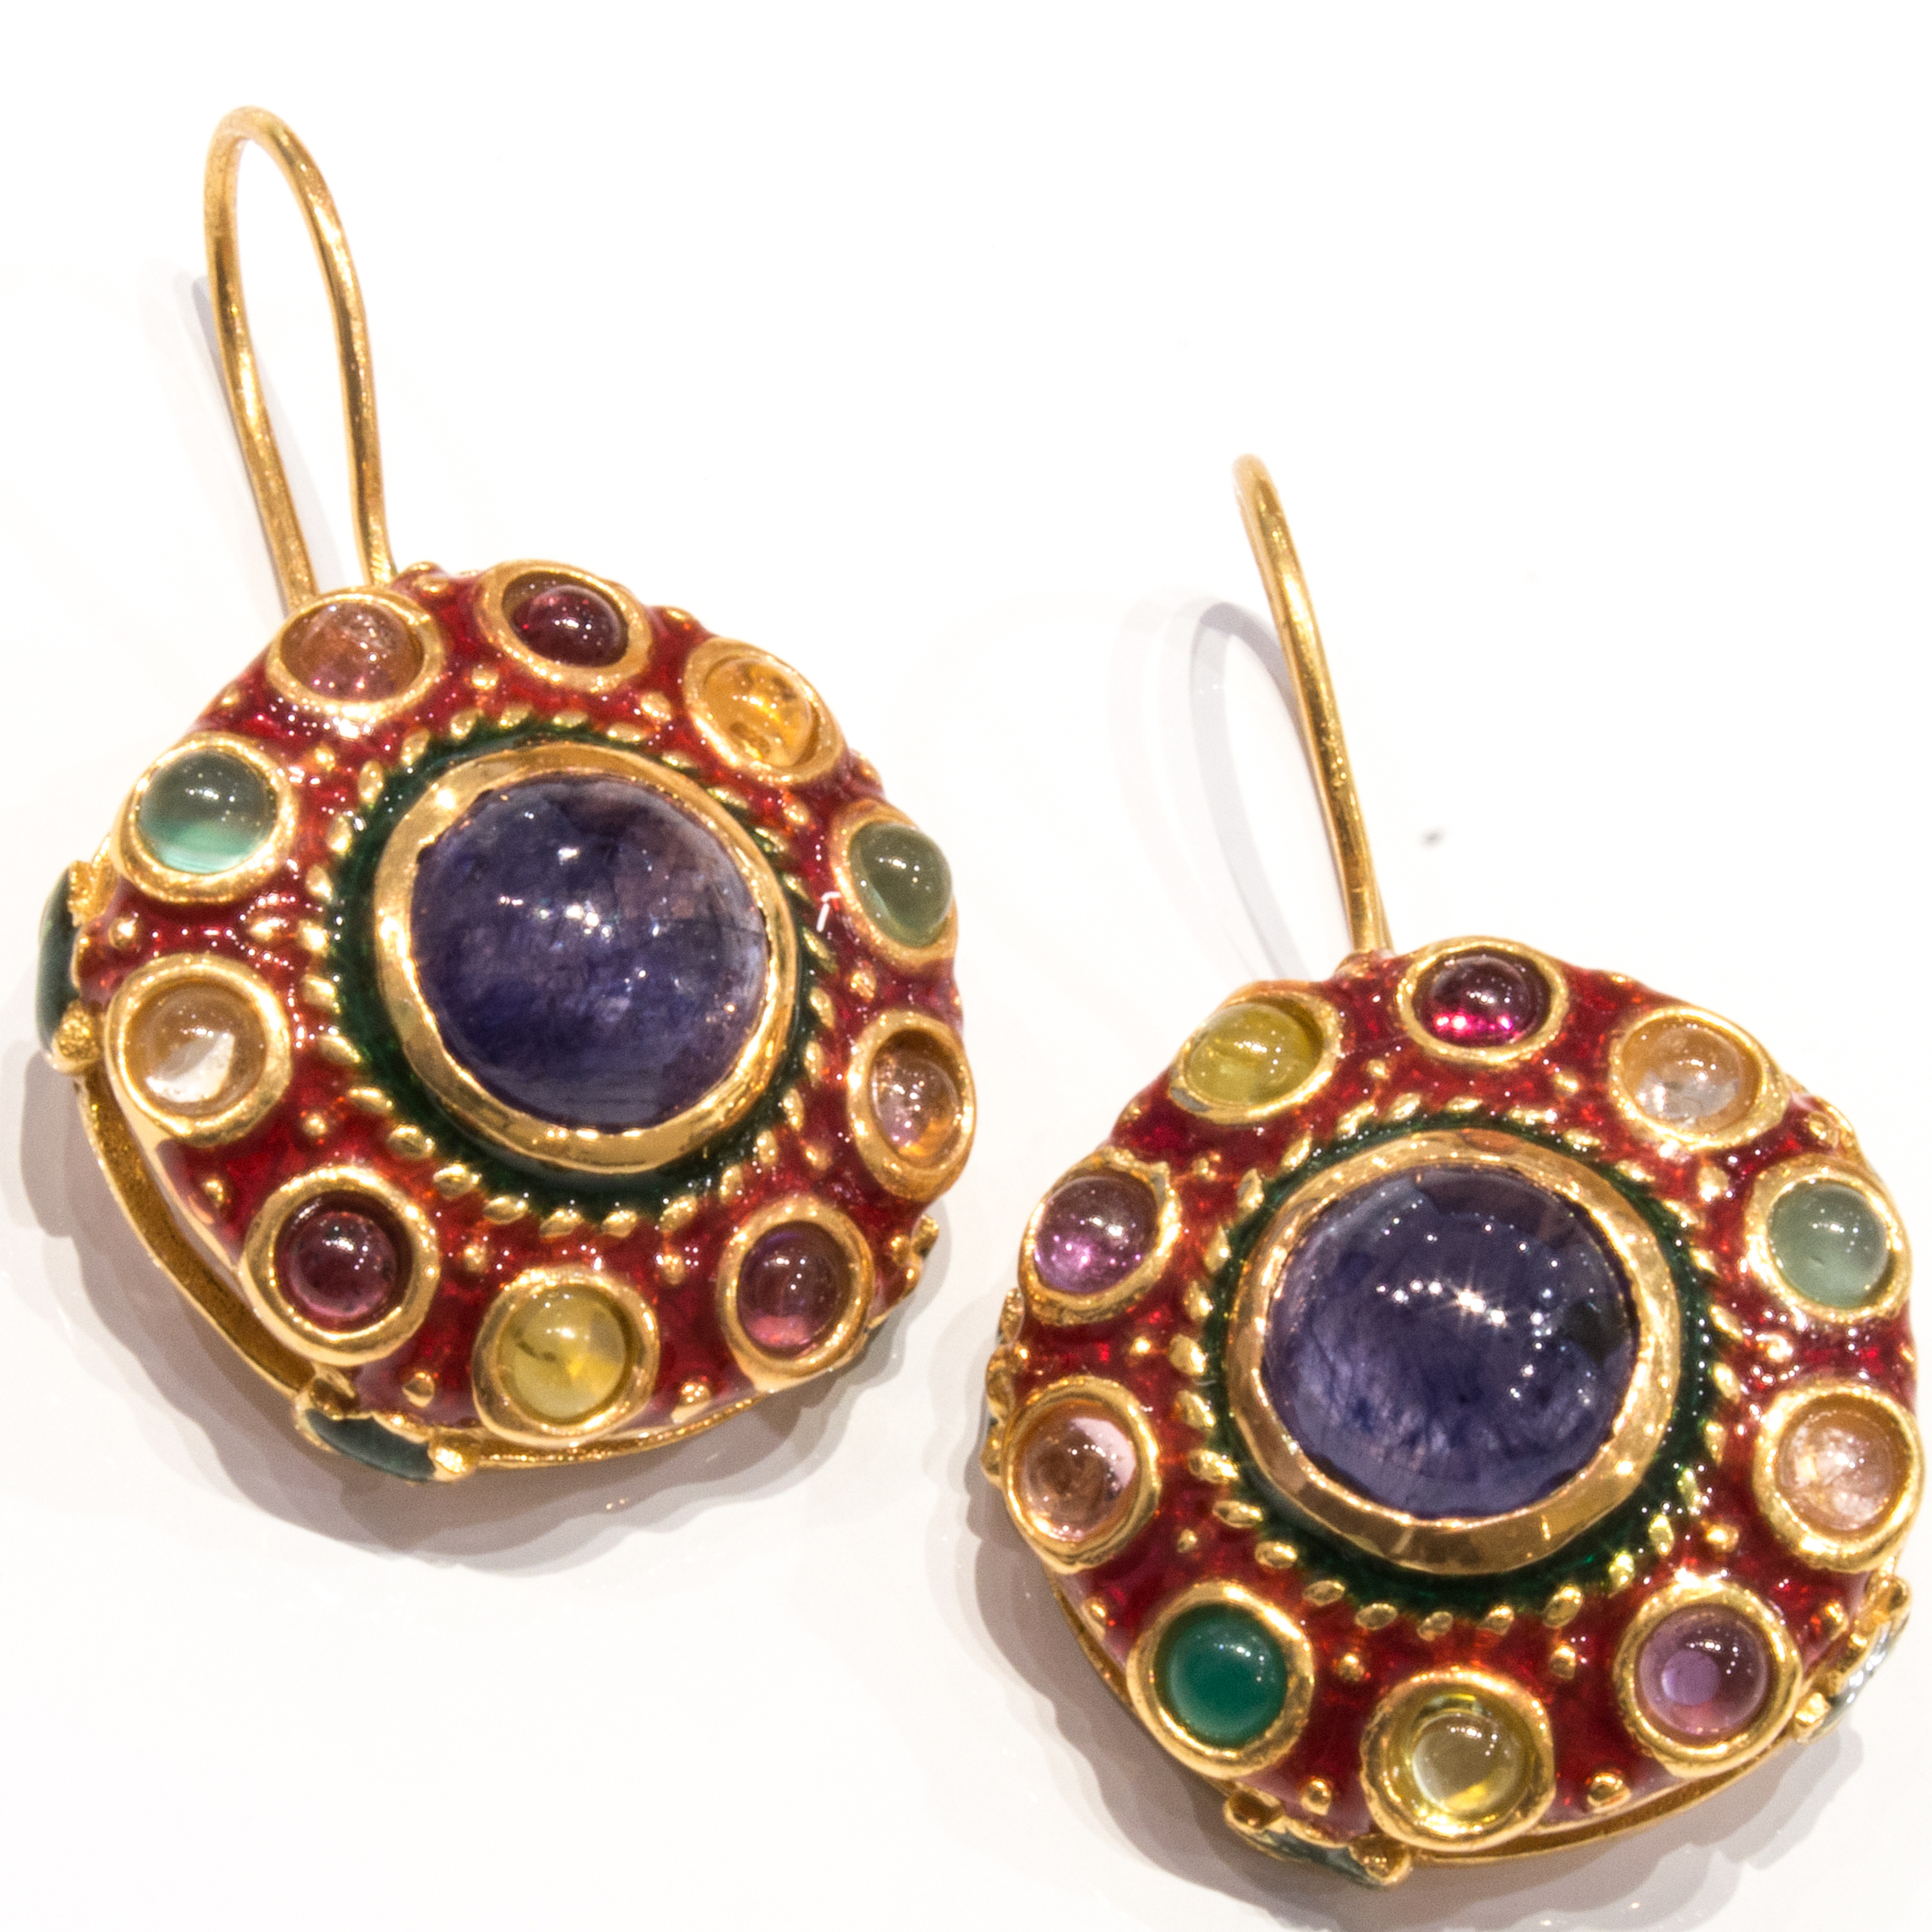 Enamel Italian Earrings with Blue Sapphire and Natural Stones